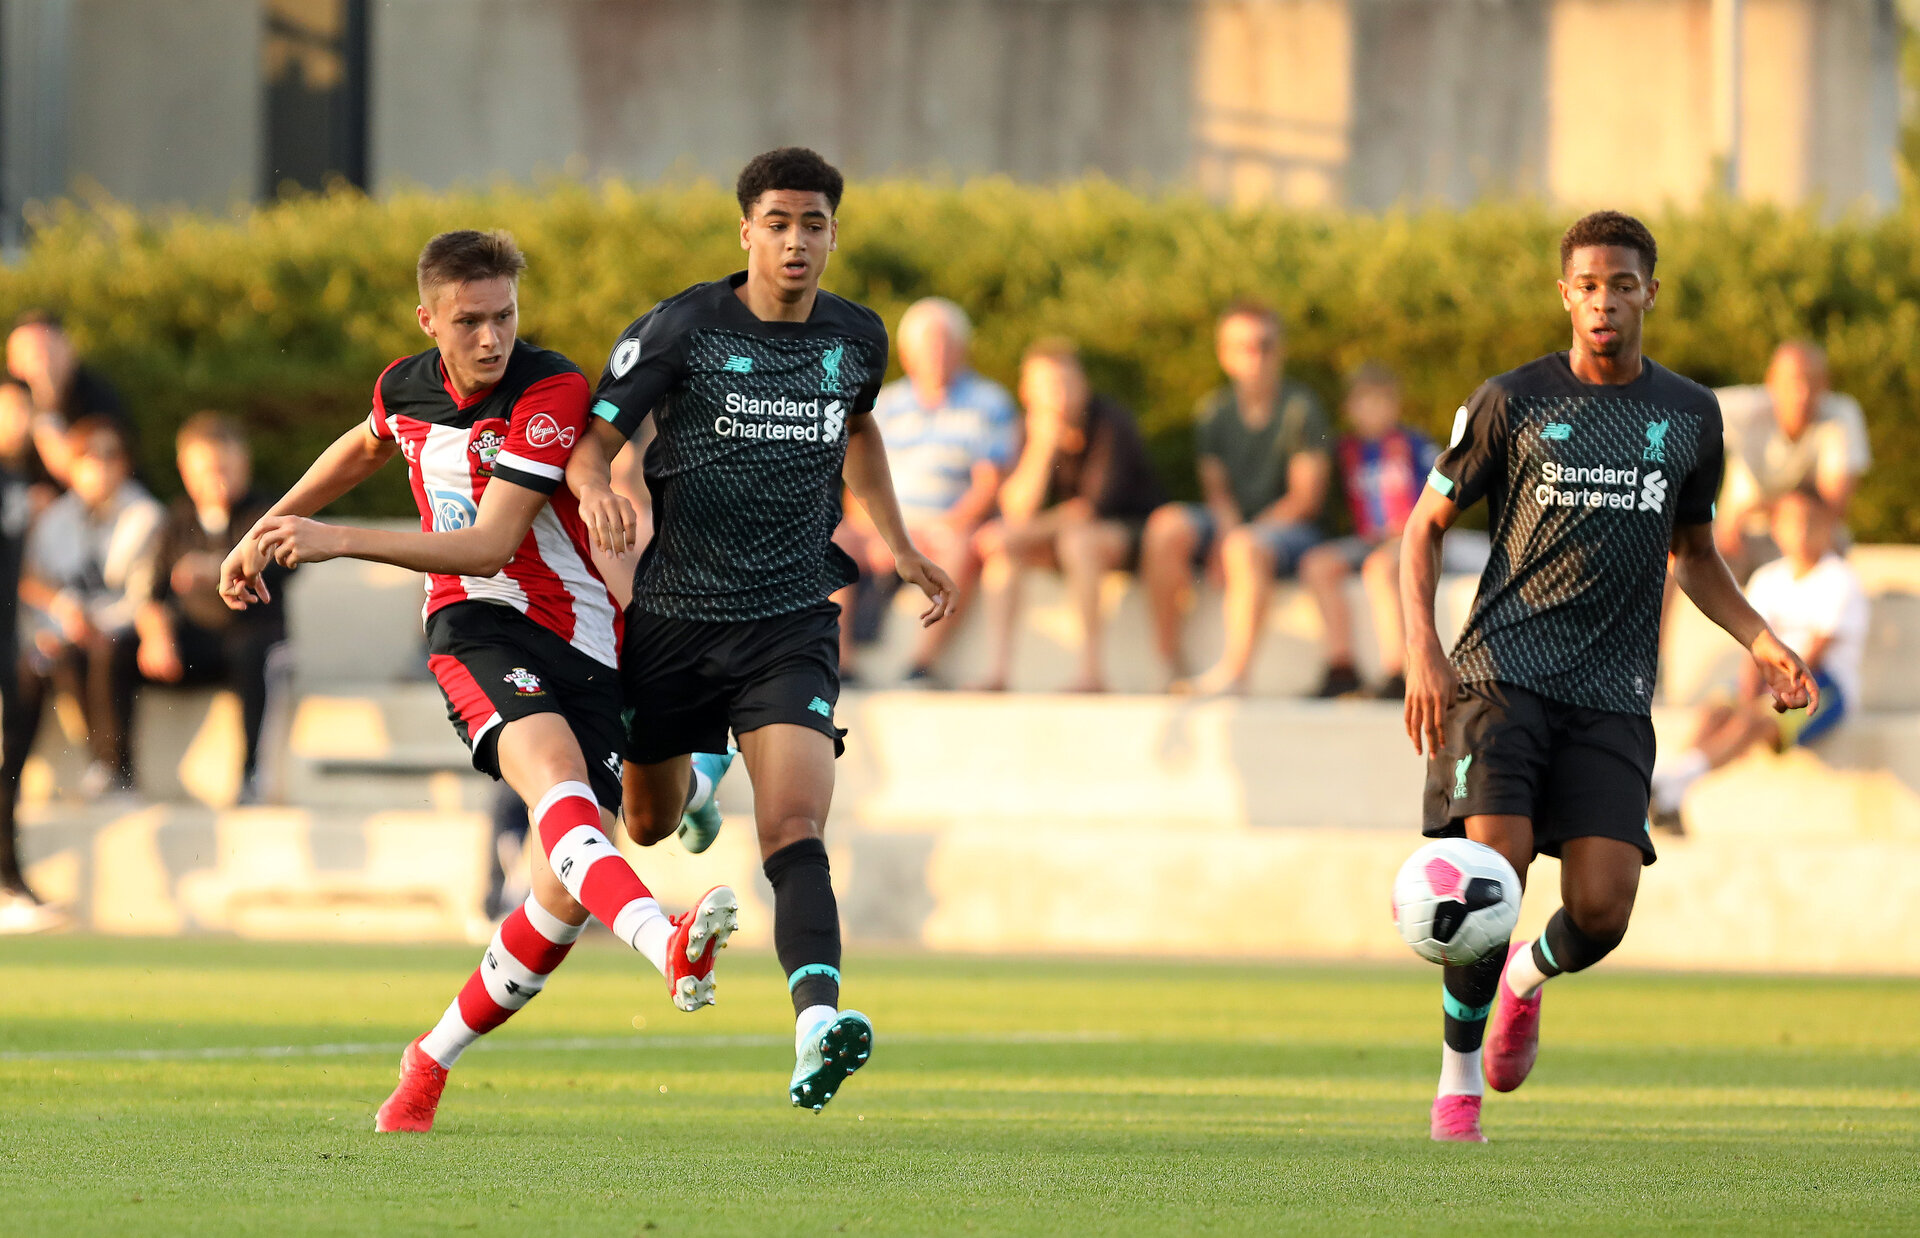 Southampton U23s v Liverpool U23s, Staplewood Campus, Marchwood, Southampton            Picture: Chris Moorhouse       Monday 26th August 2019